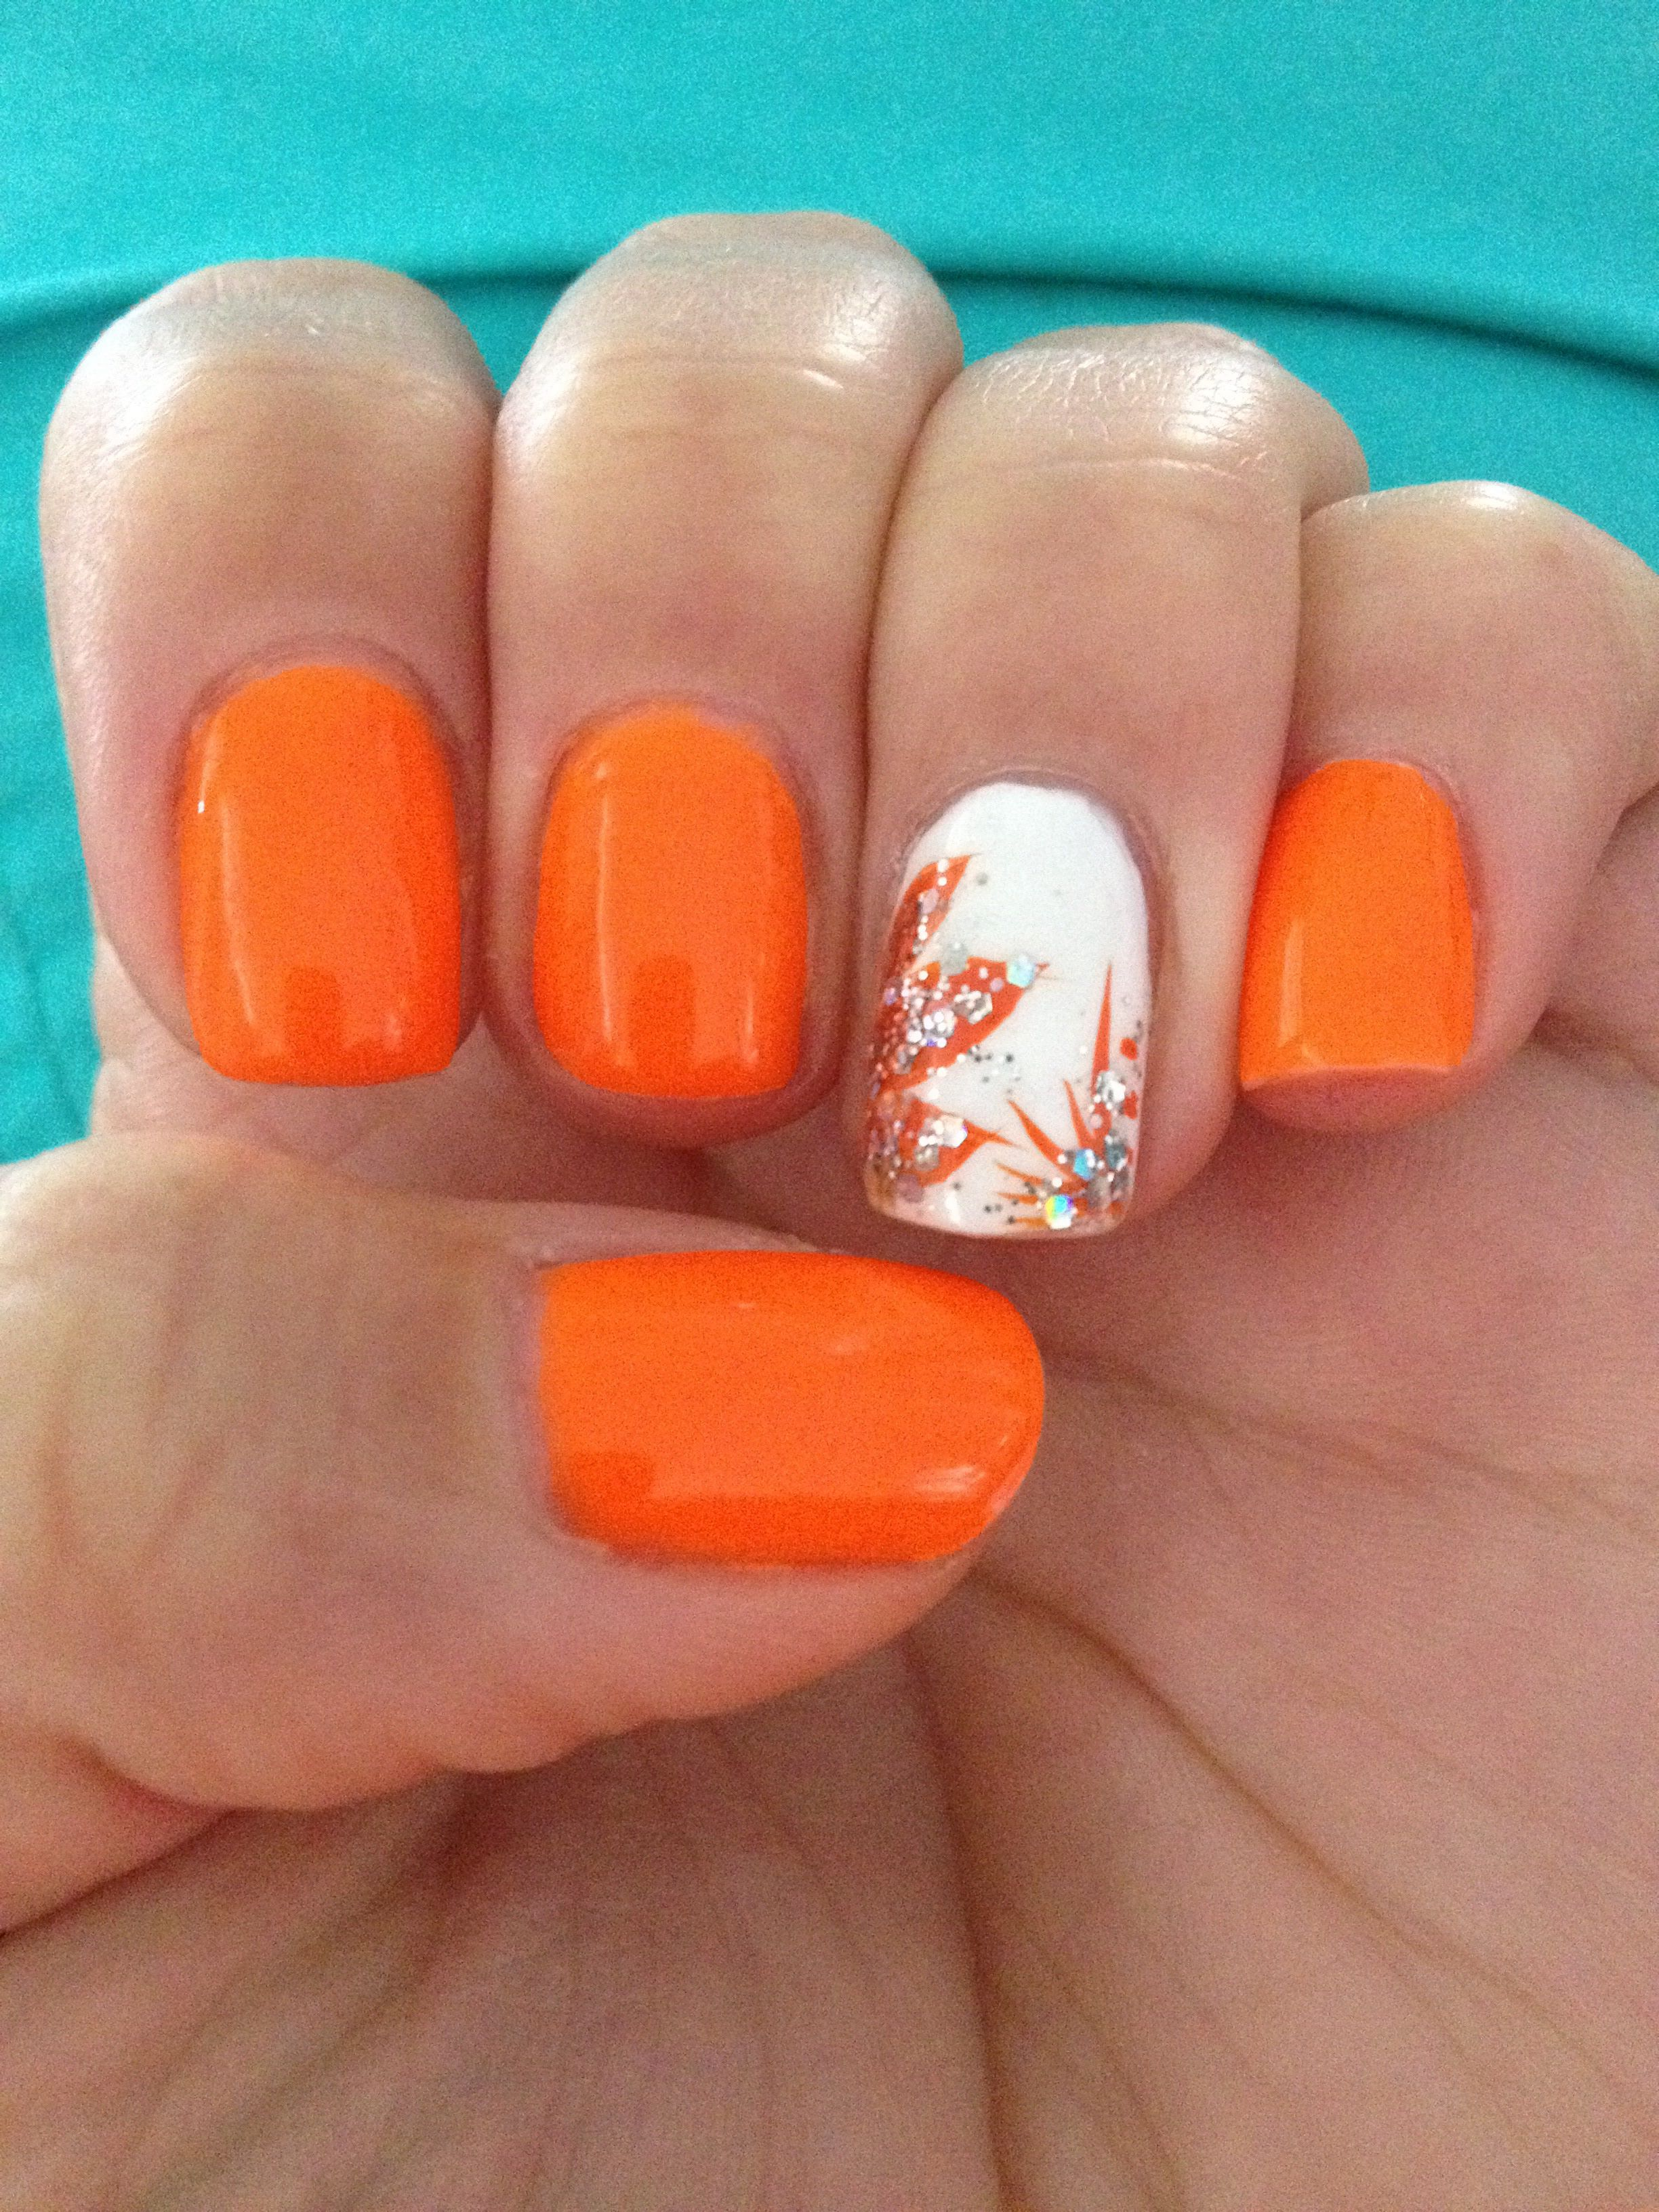 Orange Nails with White Accent Applying the Orange Strokes with a Striper - Add in some glitter, or dots, or pretty much what you would like.